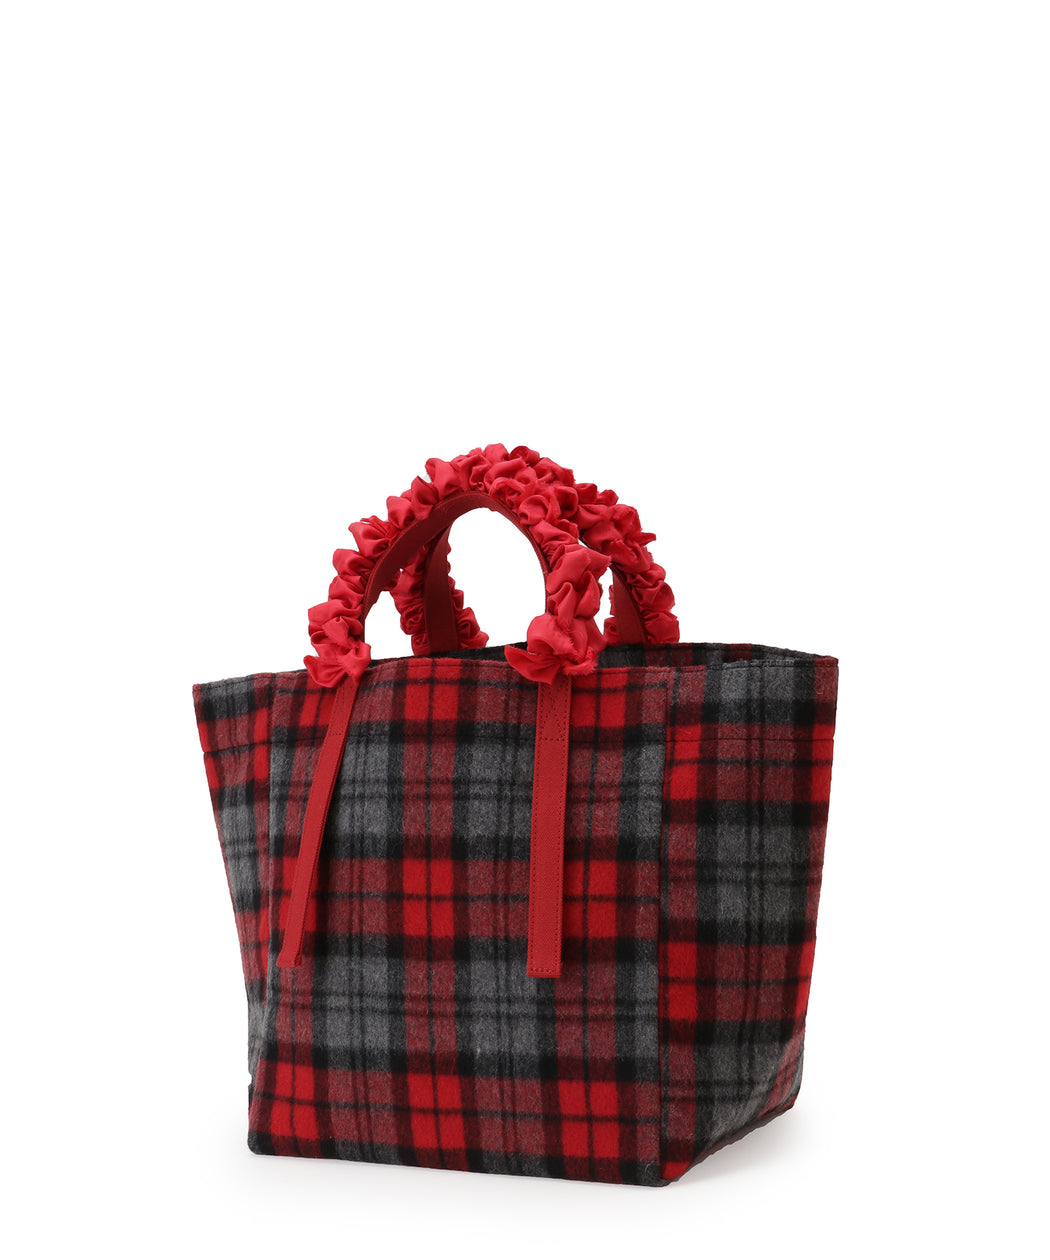 Grape handle tote (check)